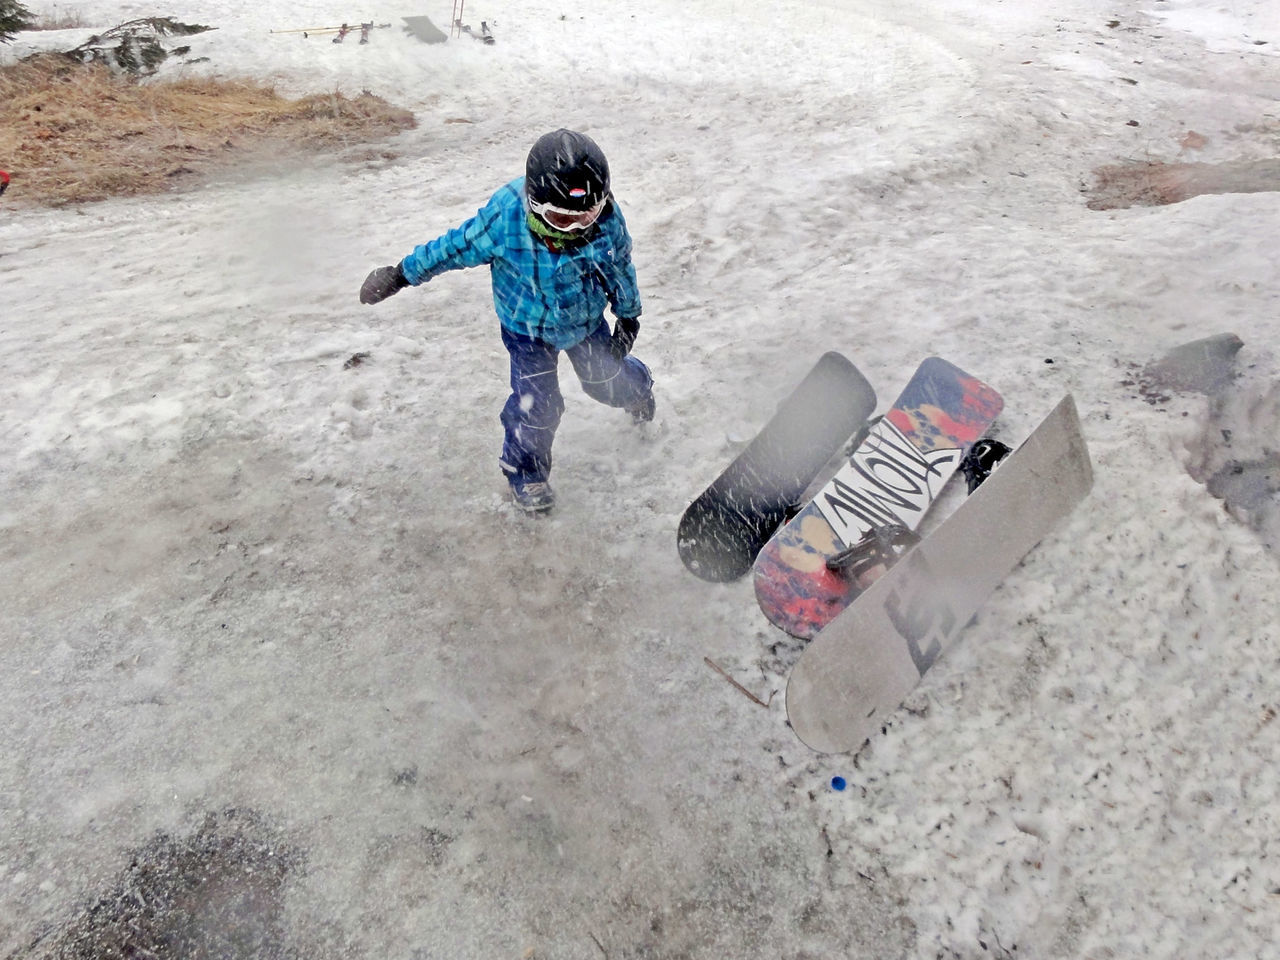 Snowboarding in on slushy snow Adventure Child Cold Day Extreme Sports Fun High Angle View Leisure Activity One Boy Only One Person Outdoors Real People Ski Center Snow Snowboard Snowboarder Snowboarding Winter Winter Sport